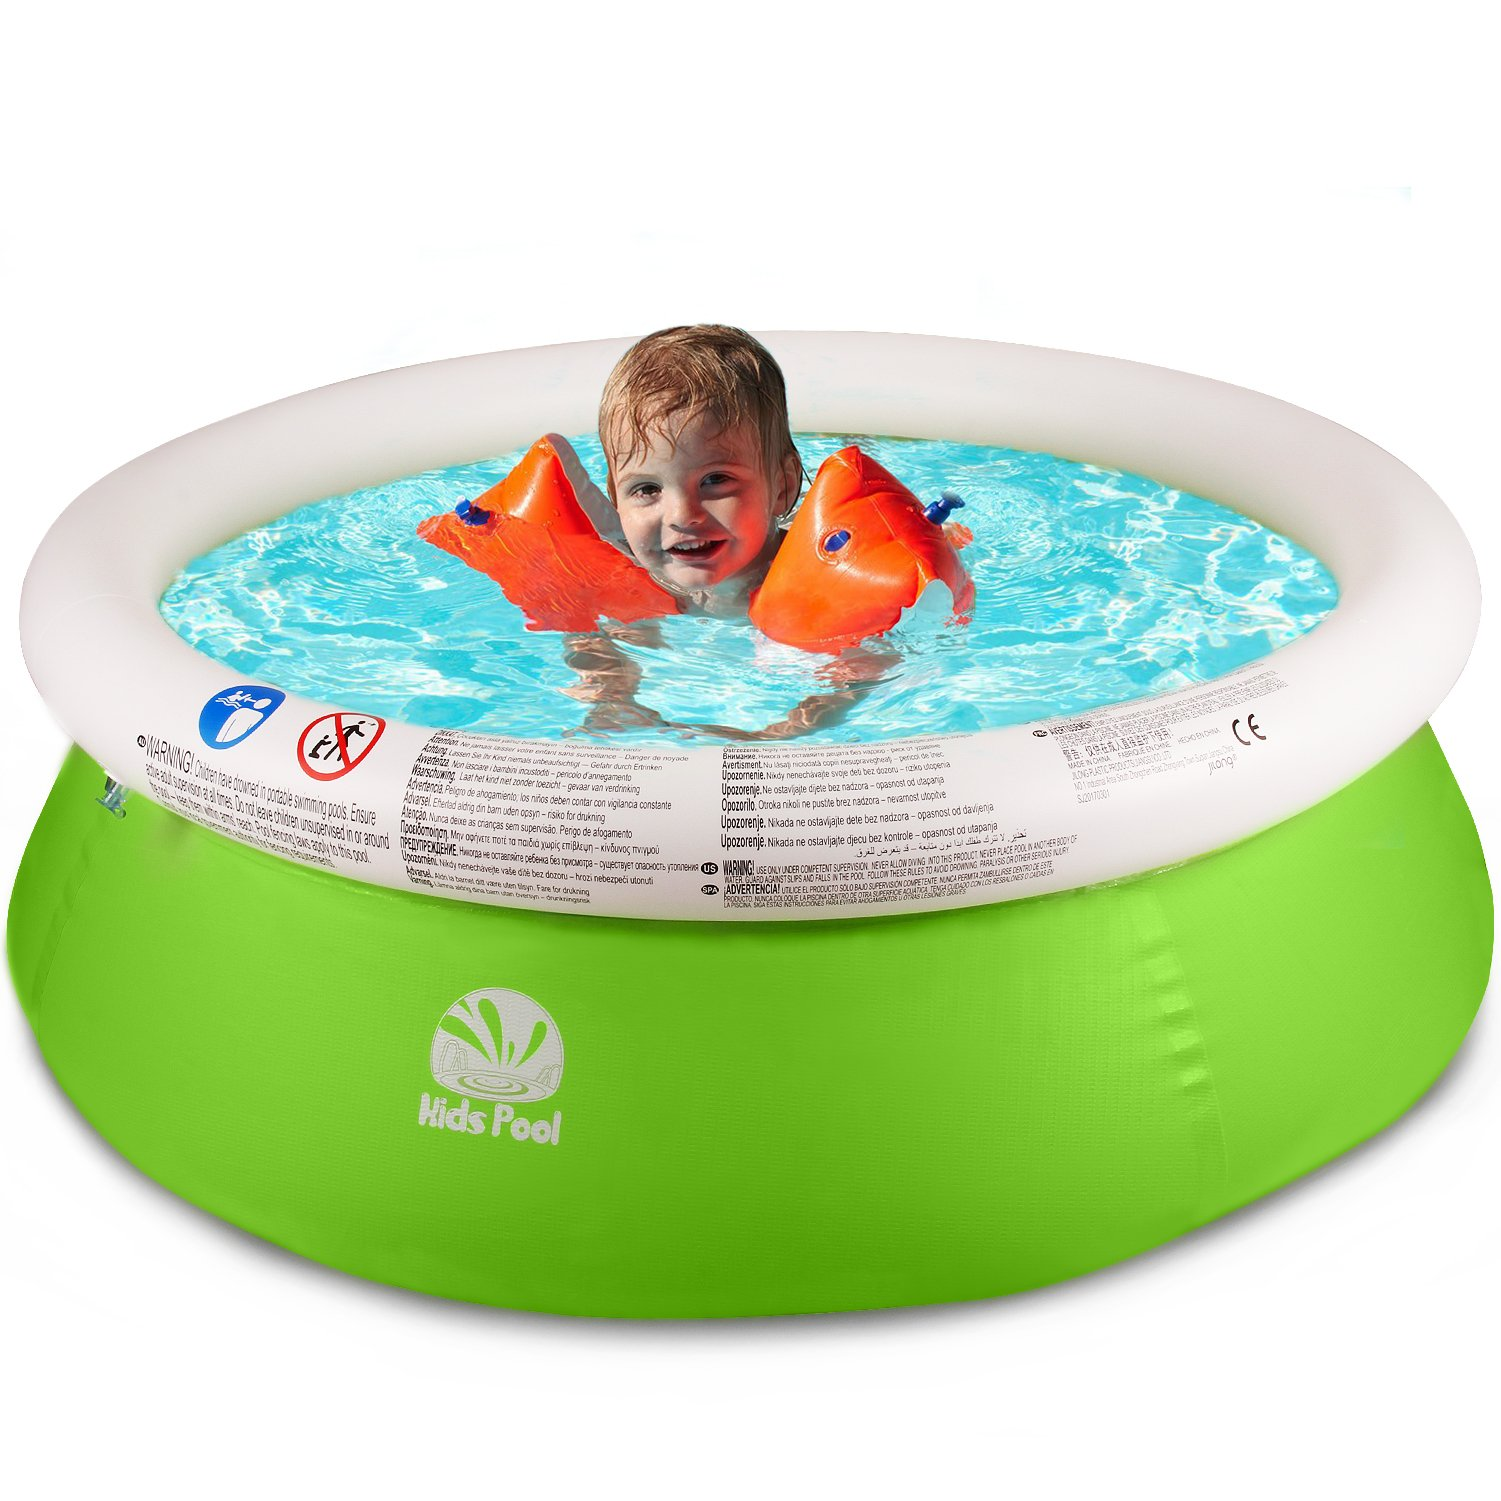 SIMREX Swimming Pool Toys for Kids Easy Set with Filter Pump Pools for Children